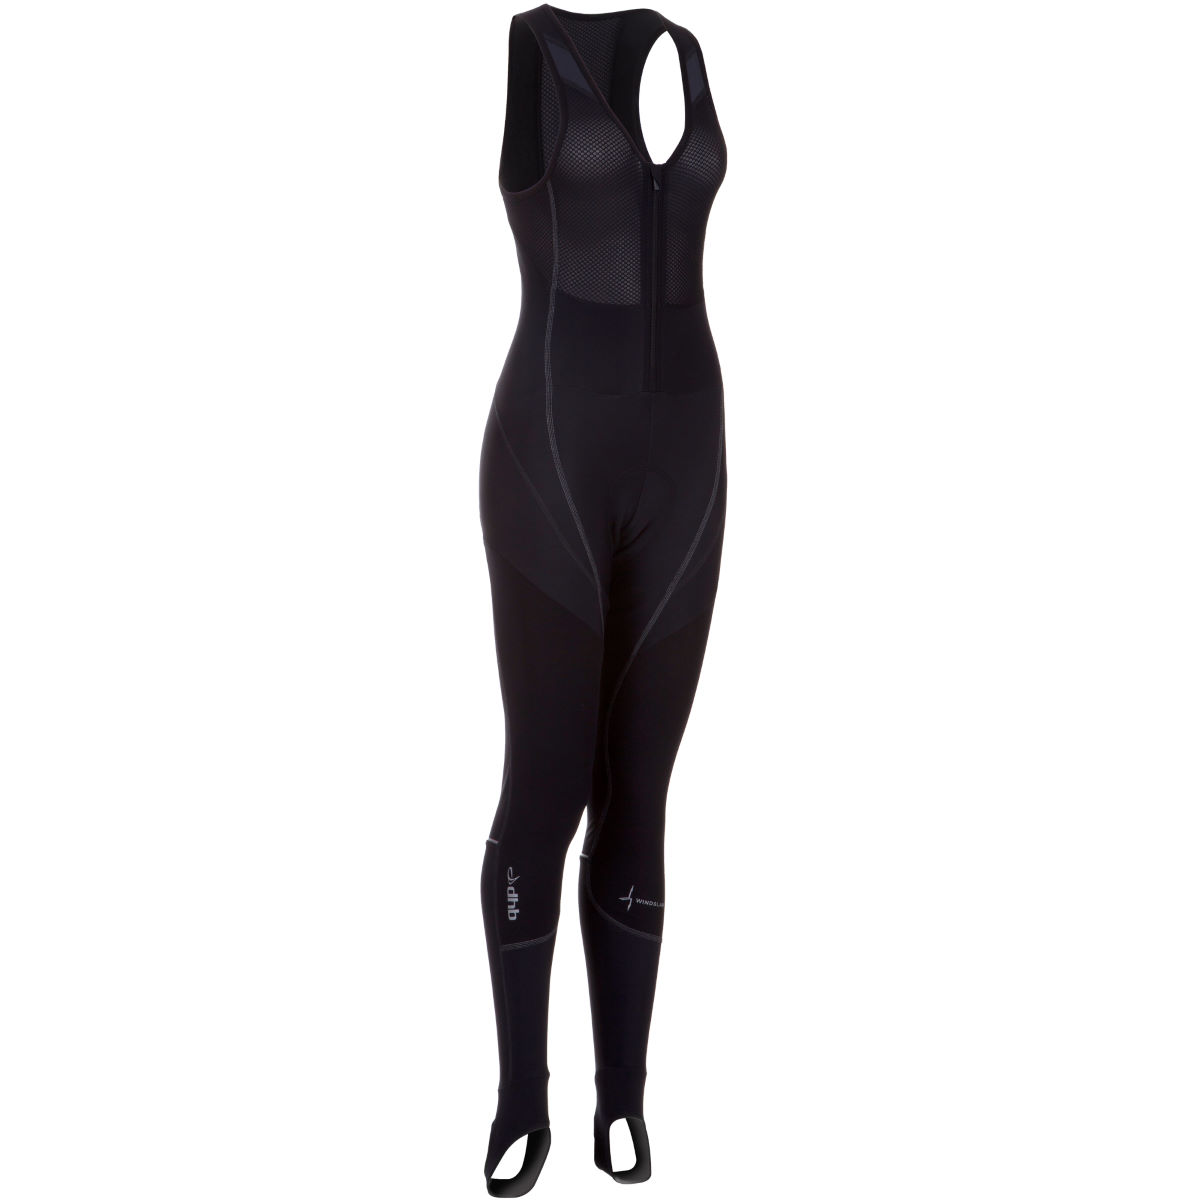 dhb Women's Vaeon Zero Padded Bib Tight